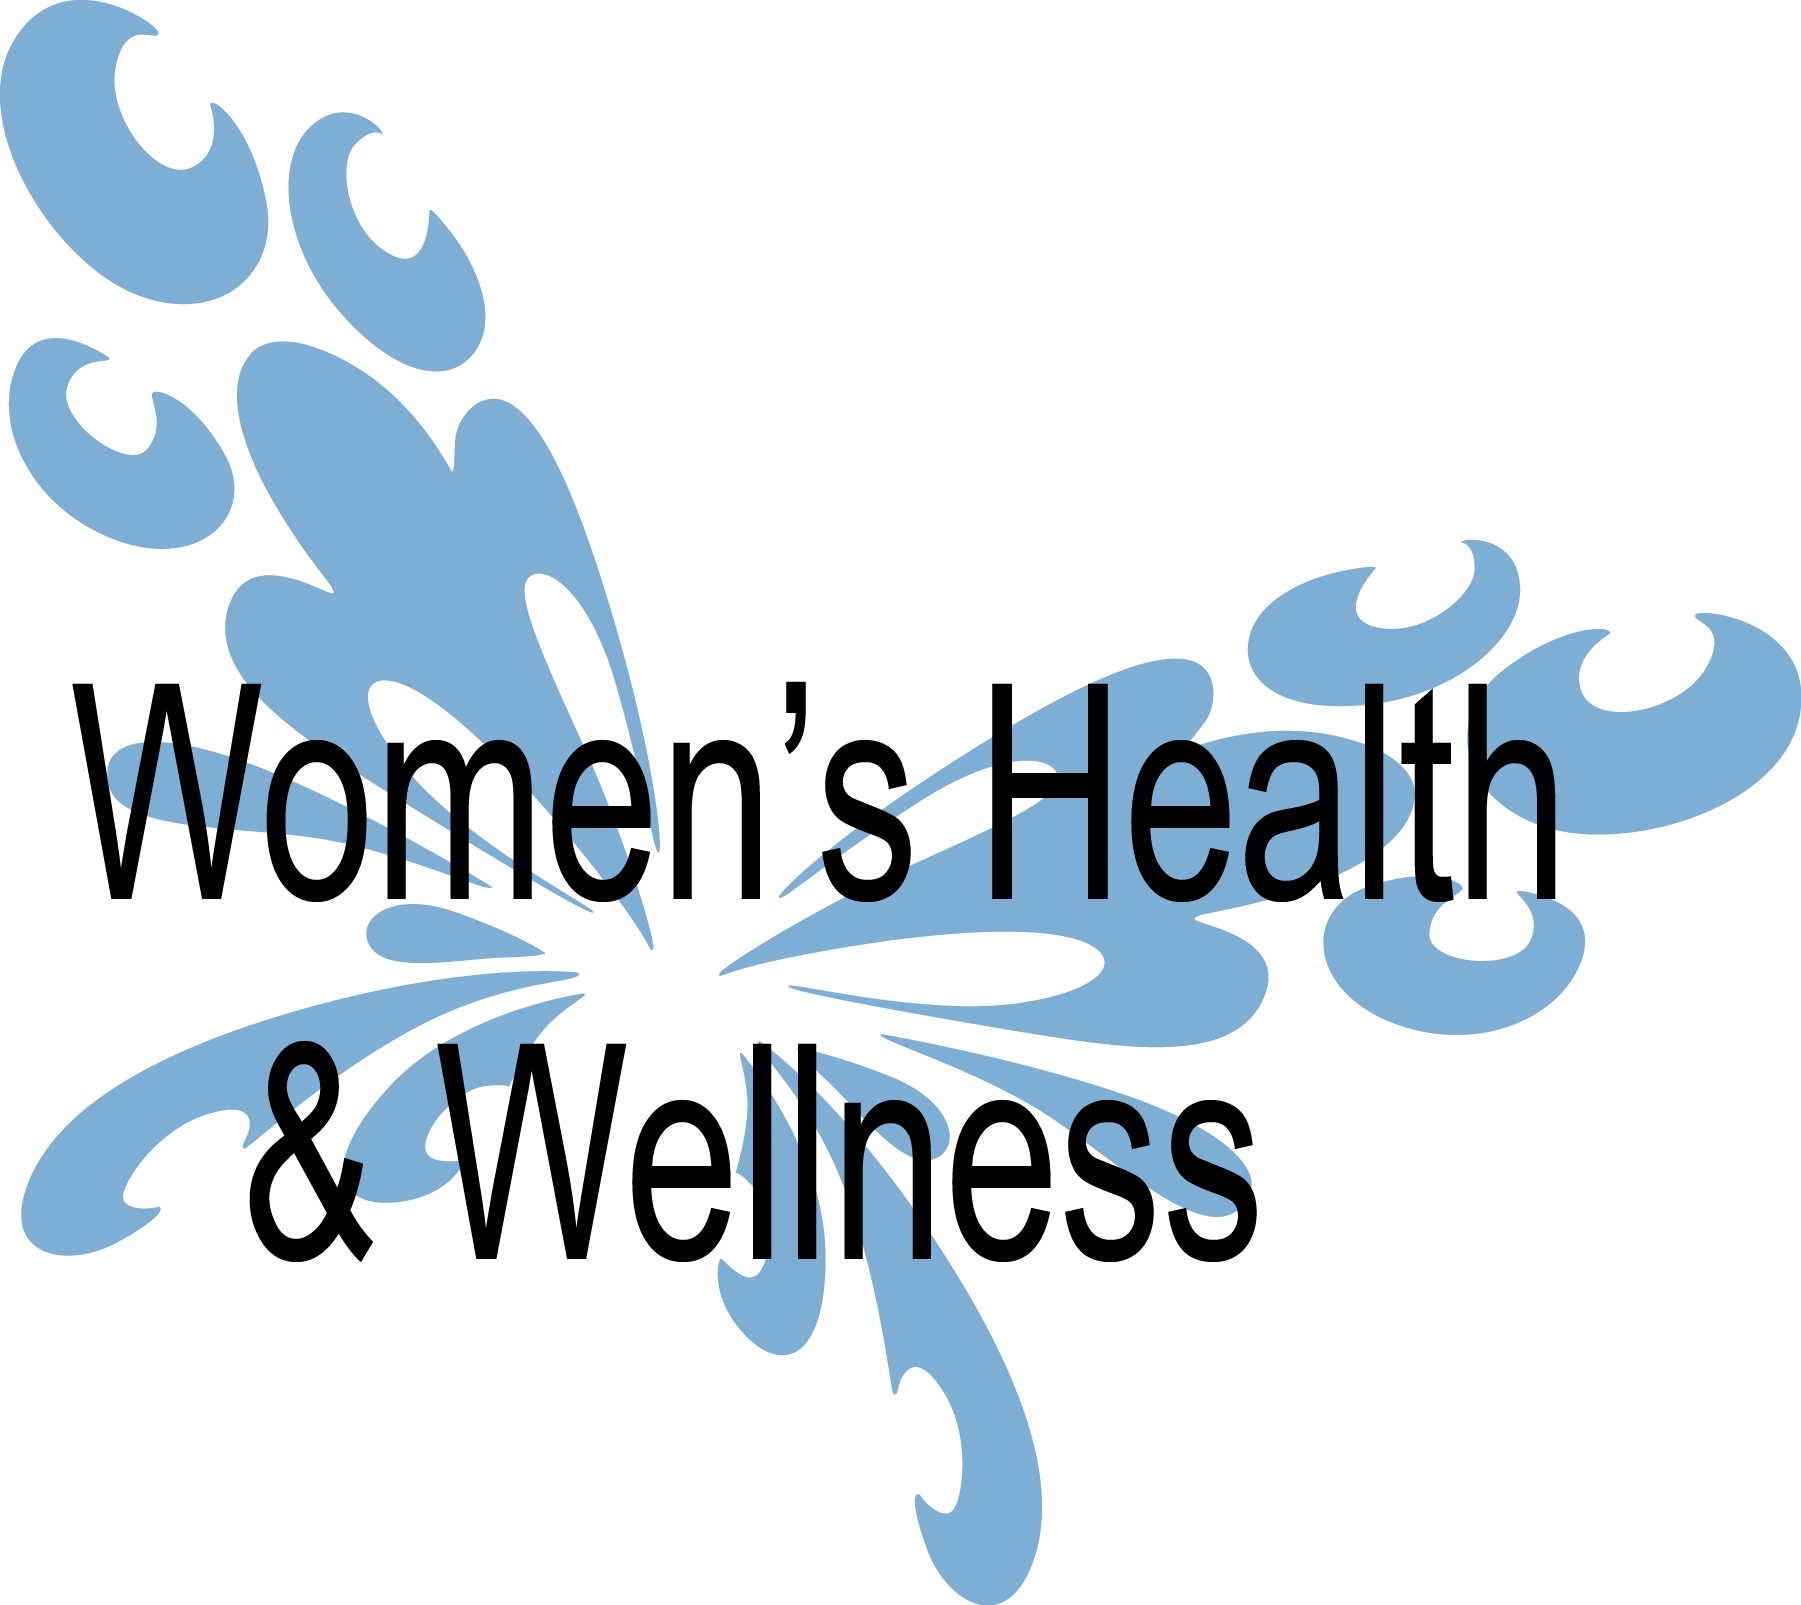 Women's Health & Wellness